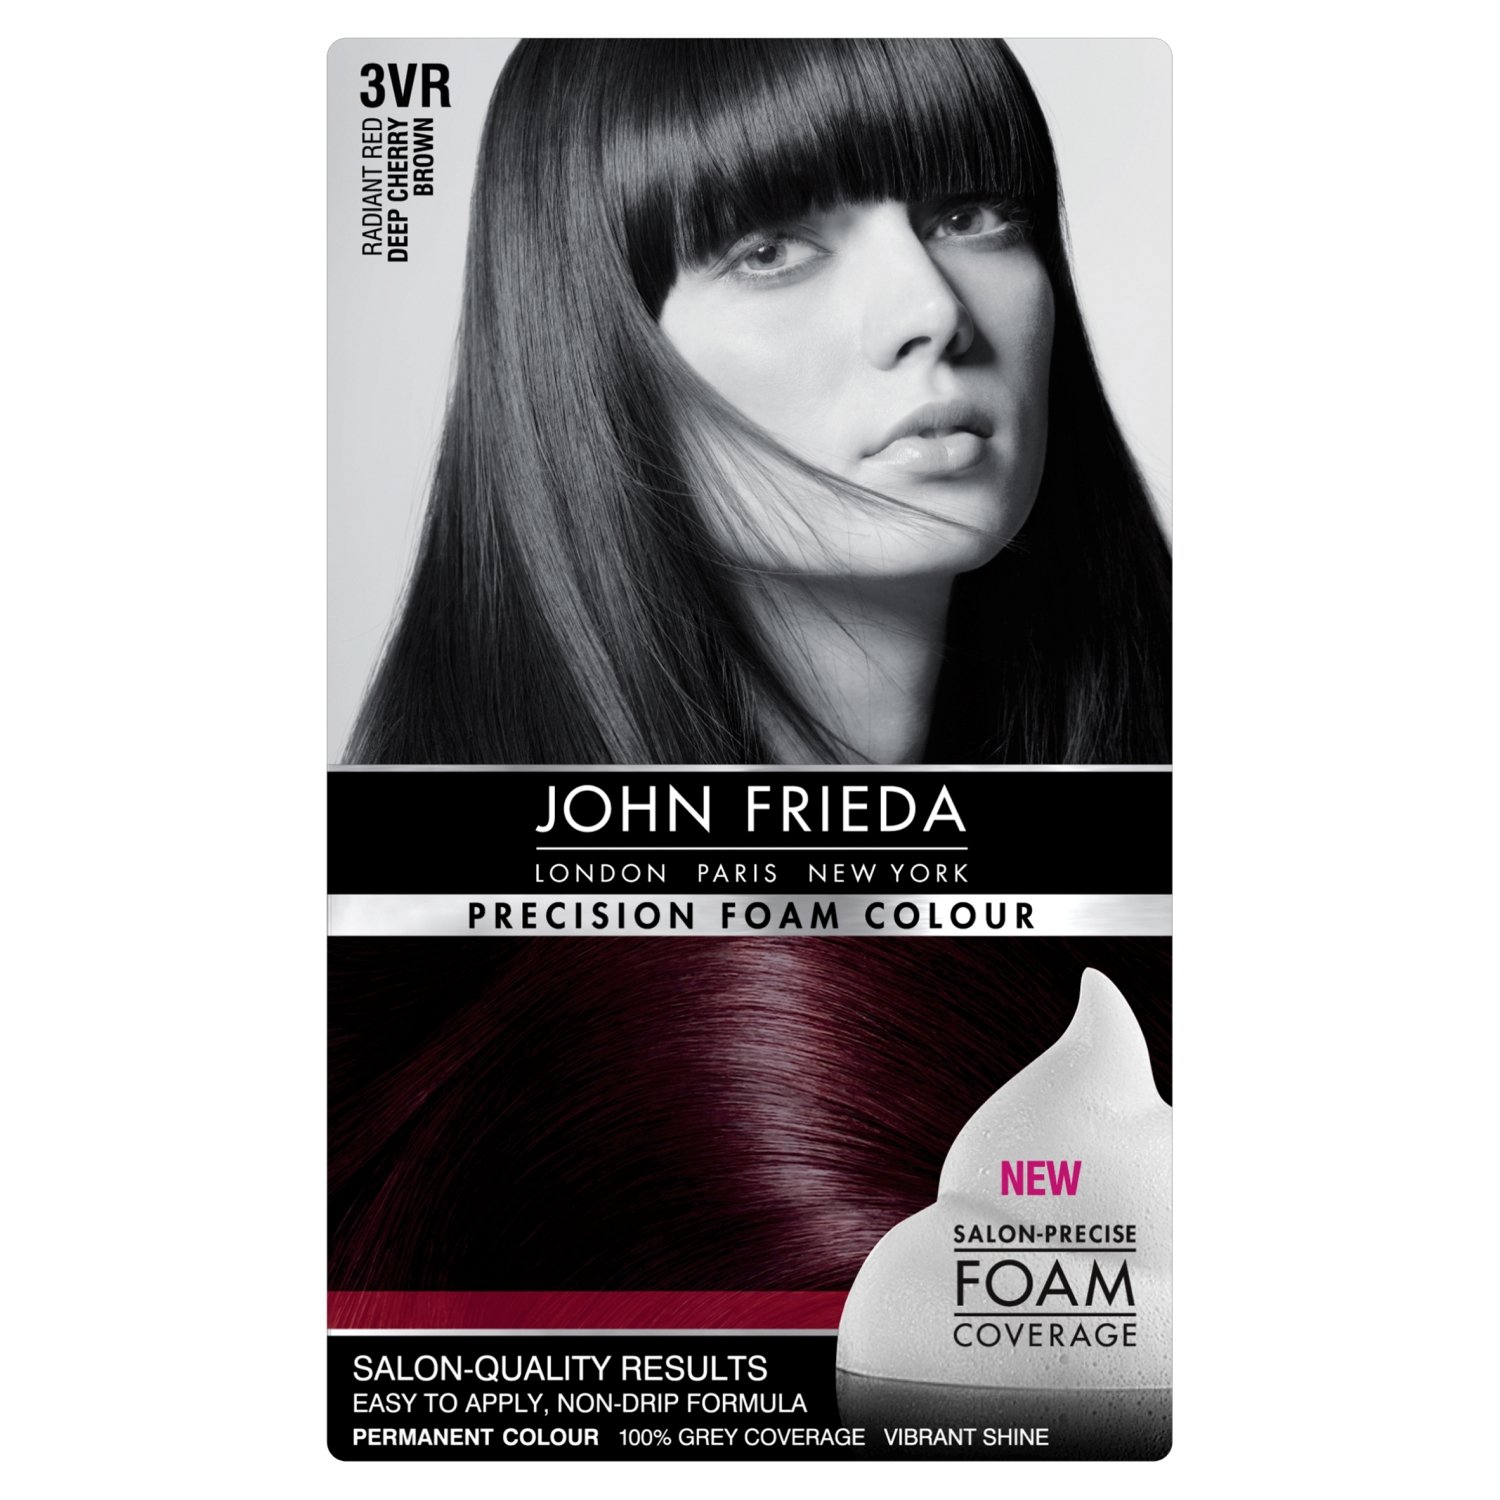 Amazon.com: John Frieda Precision Foam Colour 3Vr Deep Cherry ...